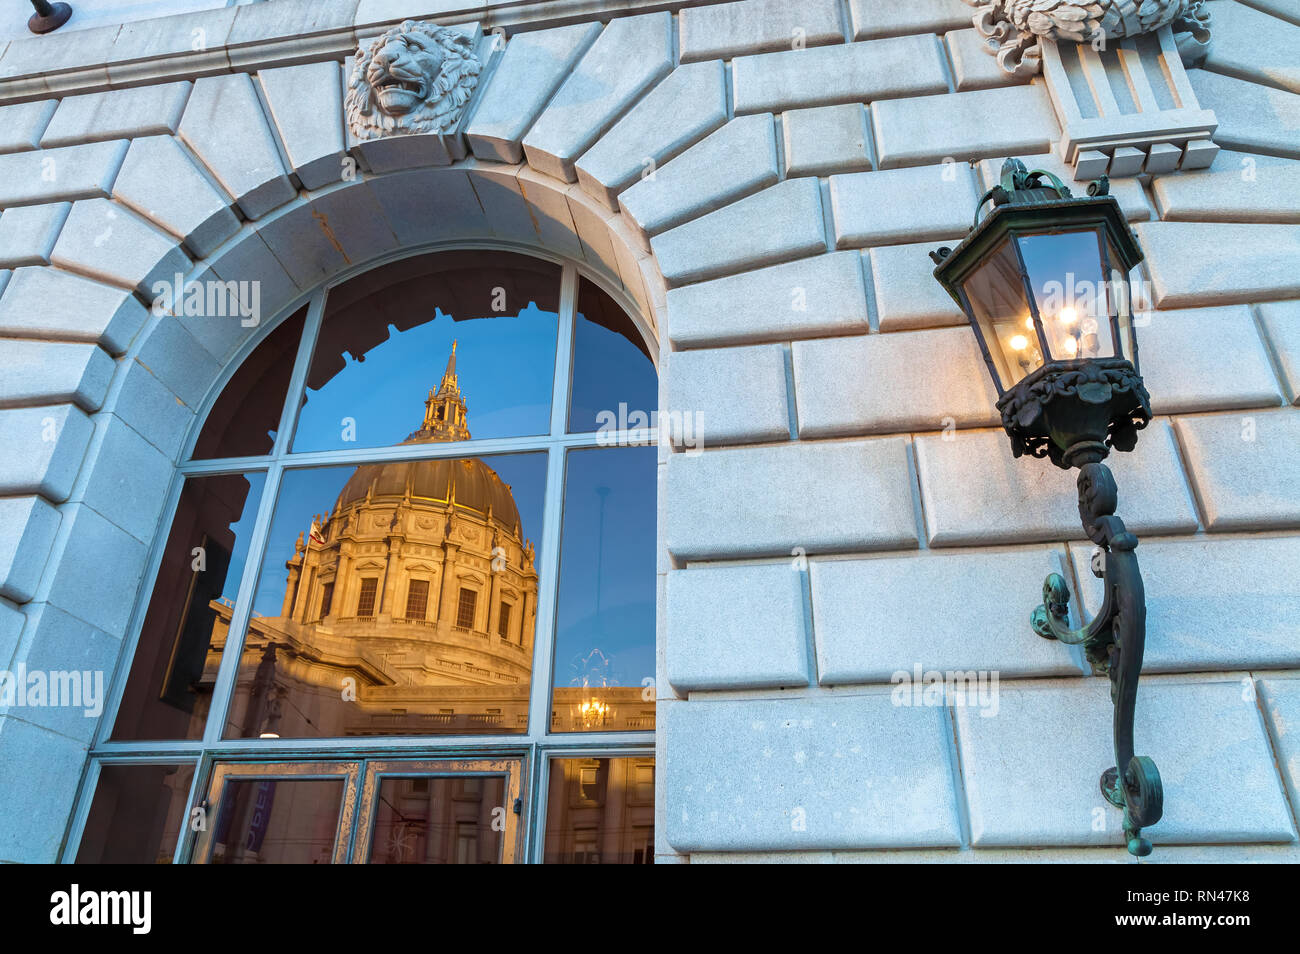 Reflections of the San Francisco City Hall on the glass window of The  War Memorial Opera House, and a wall light sconce, California, USA - Stock Image